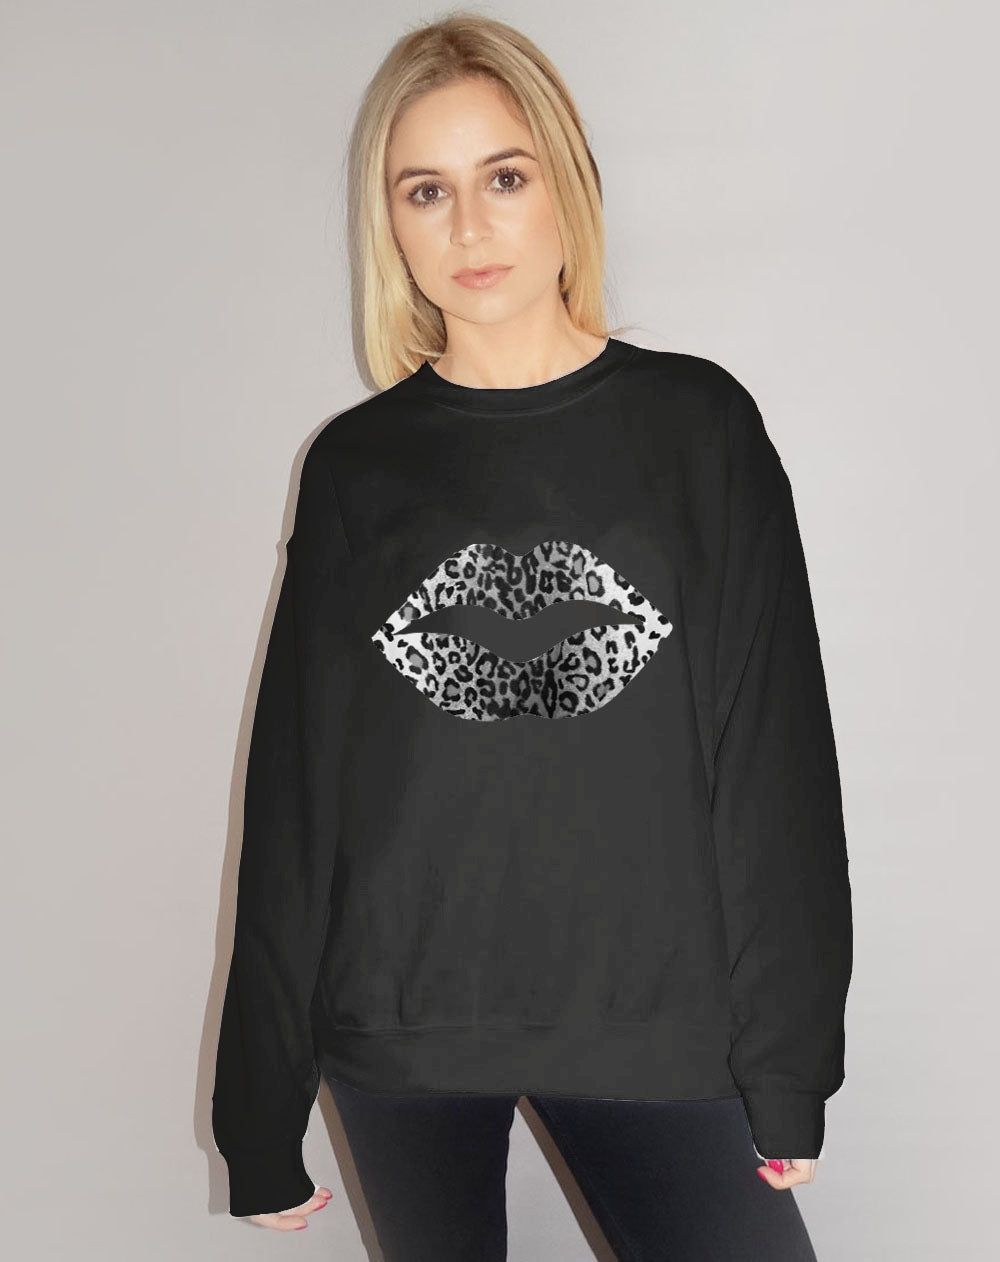 Jumper in Black and White Leopard Lip